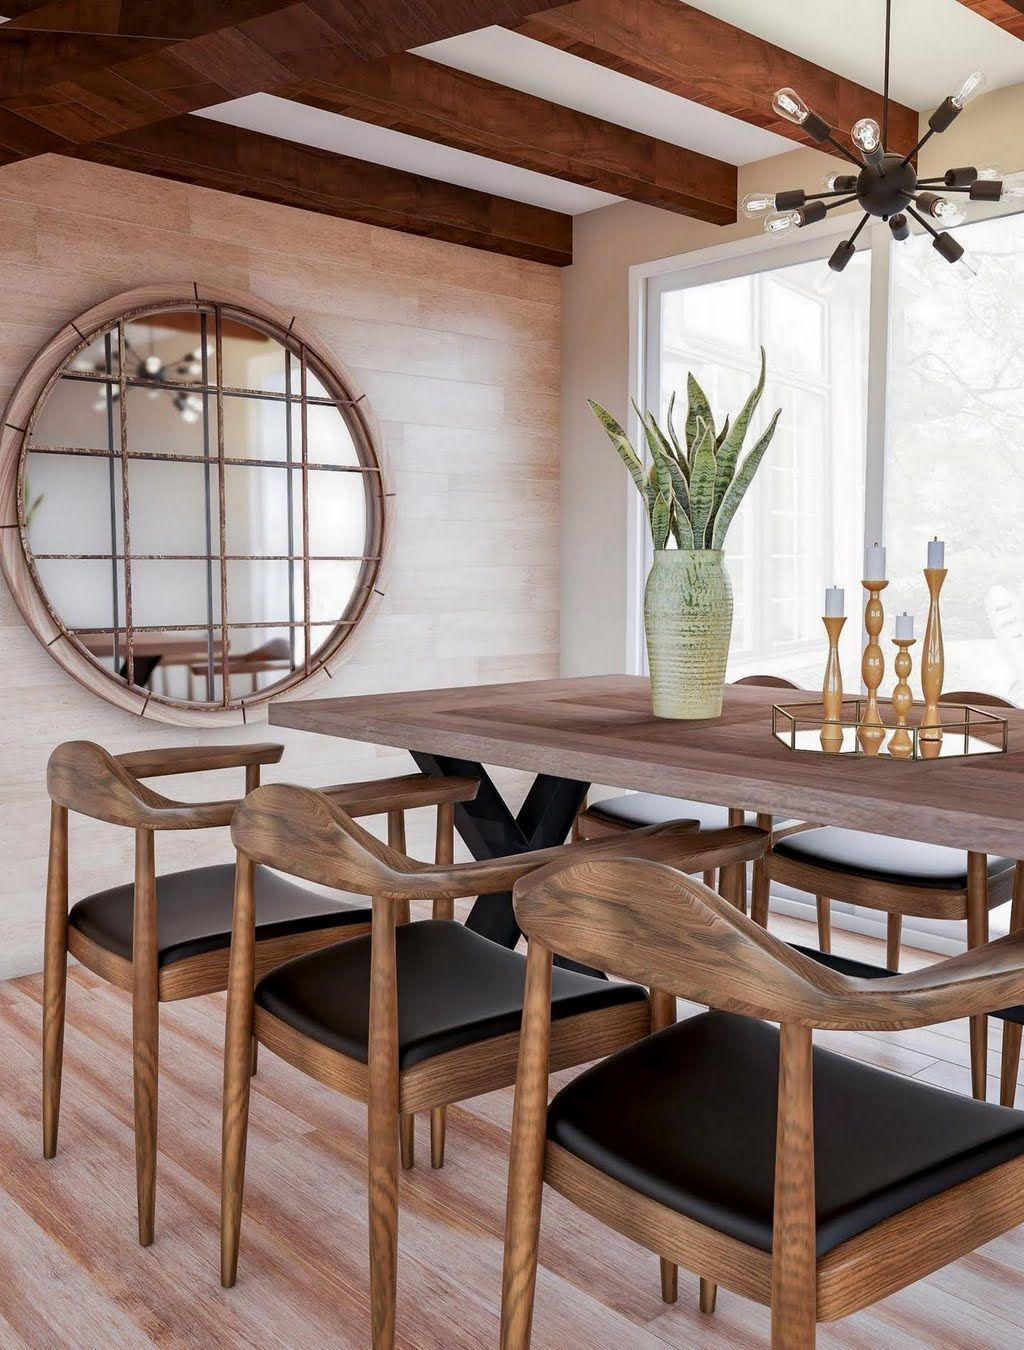 Shop Our Dining Room Department To Customize Your Modern Dining Room In Rich Wood Tones Today At T Modern Dining Room Wood Floor Dining Room Dining Room Design